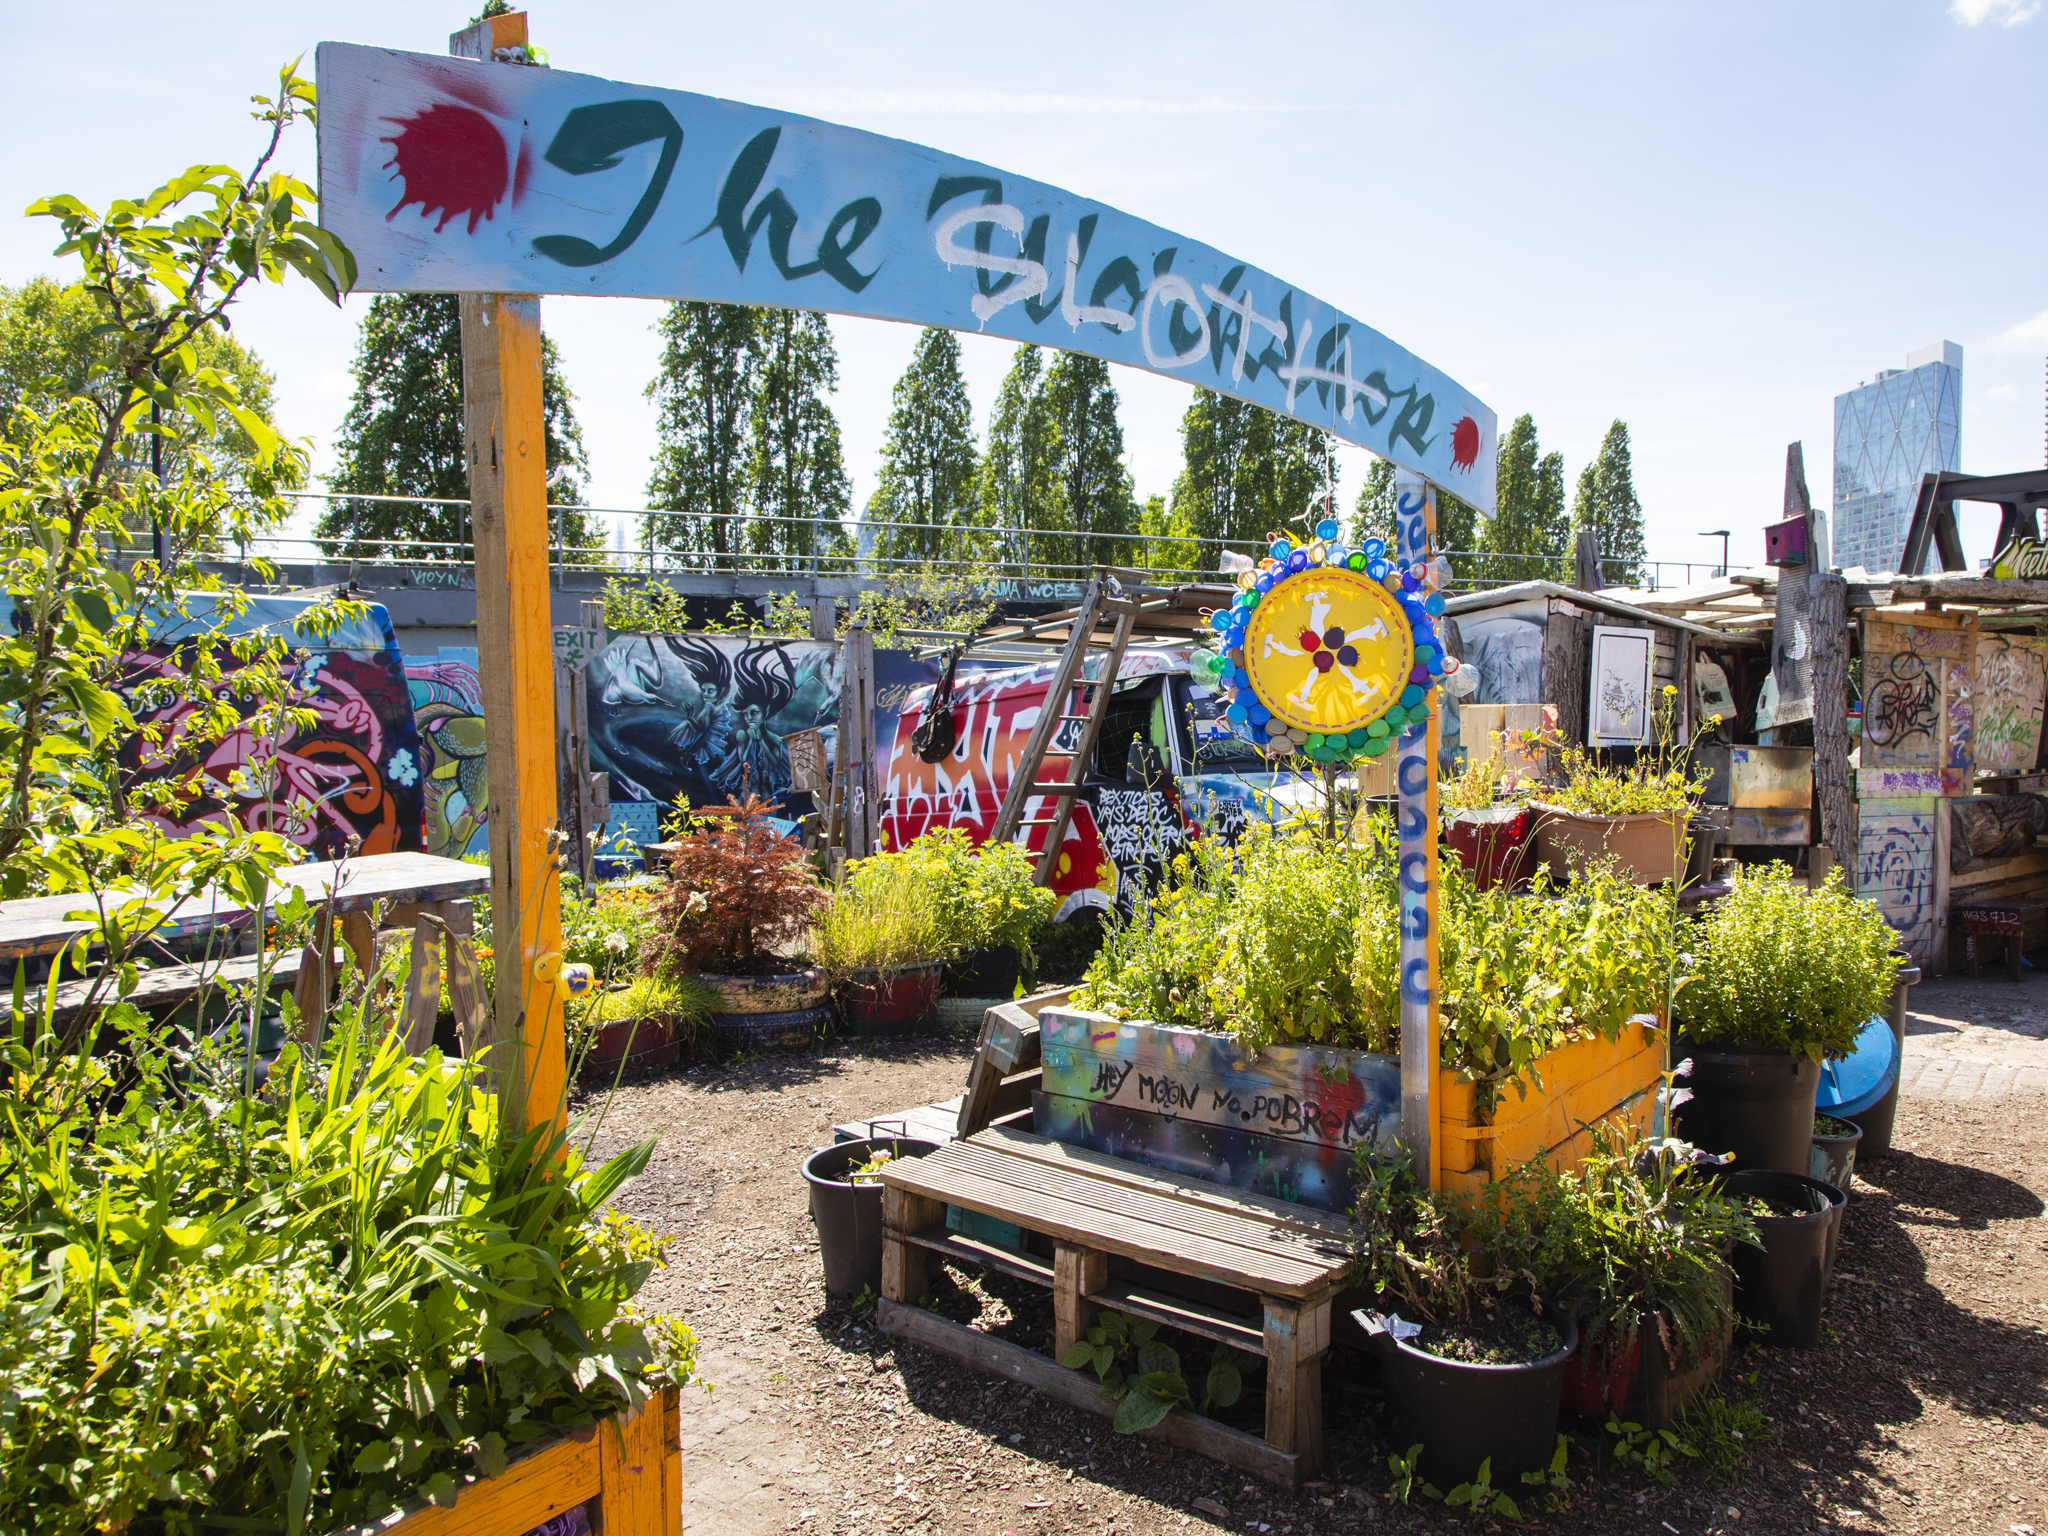 Meet the Londoners who are transforming the city through gardening